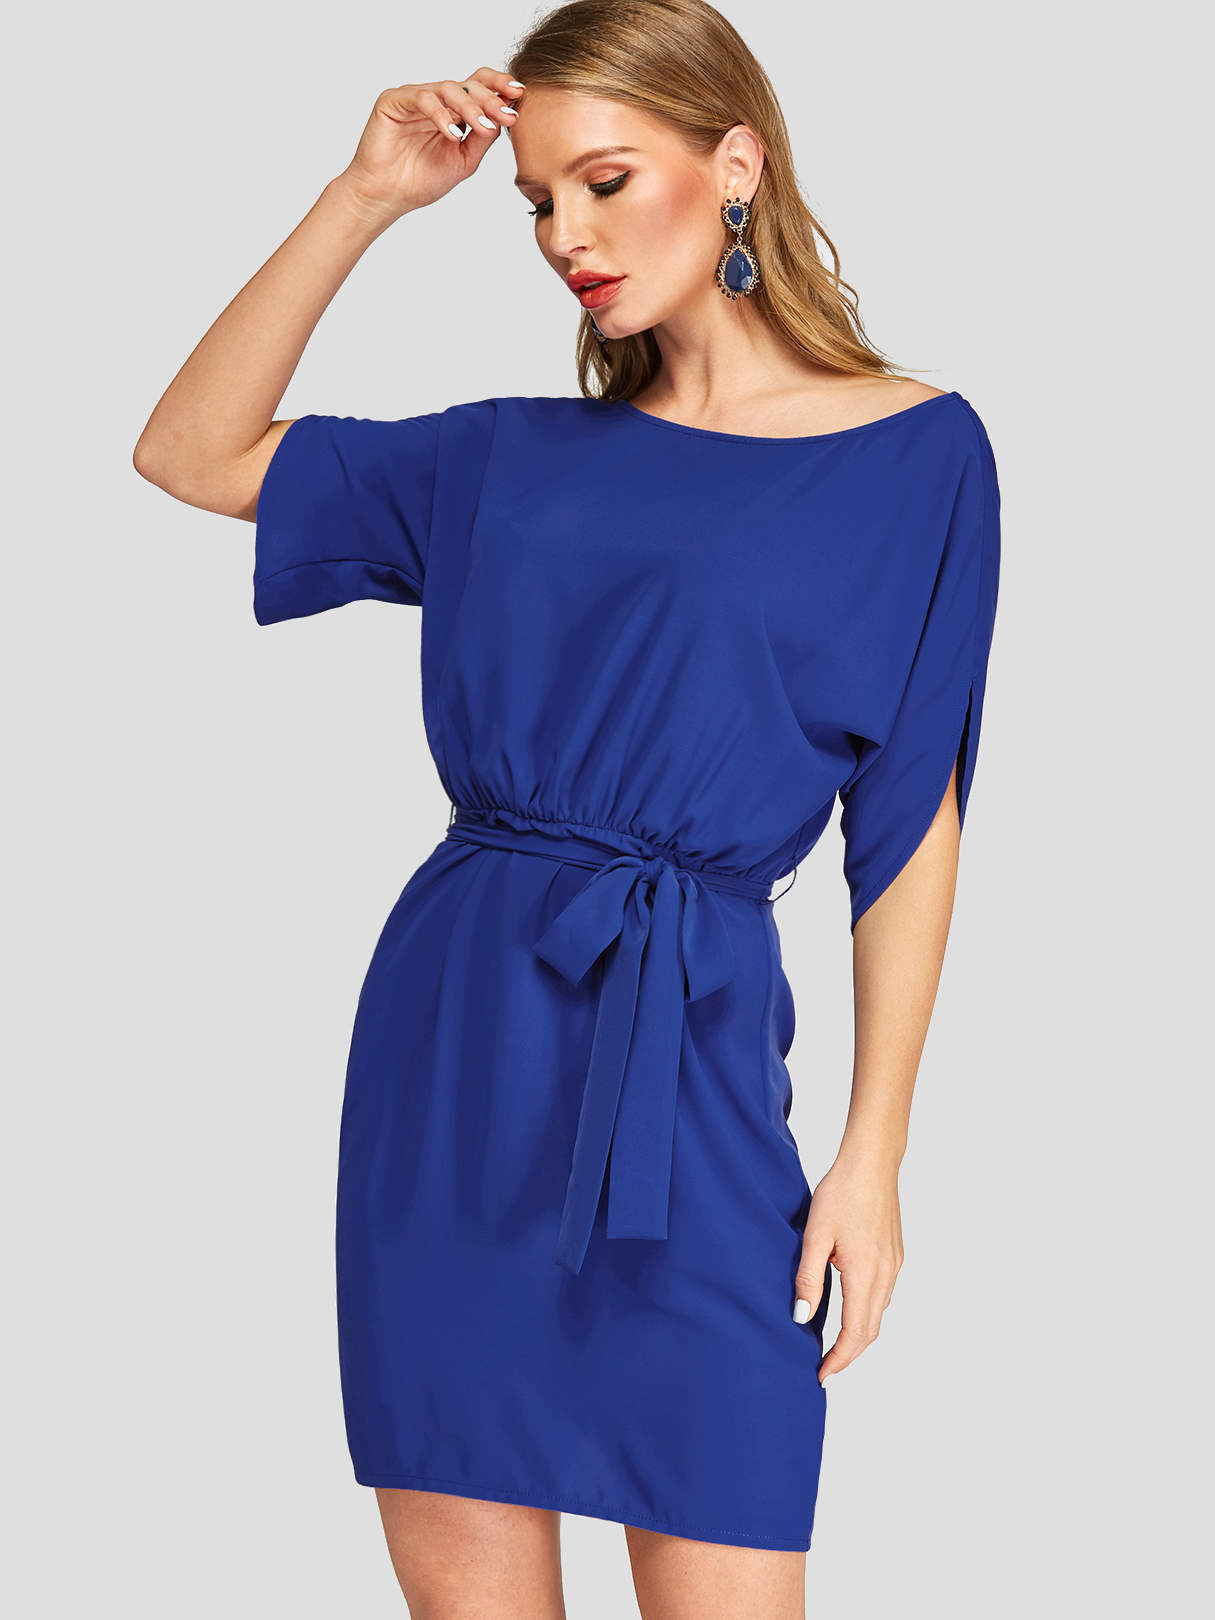 Royal Blue Falling Shoulder sleeve Work Dress with Belt